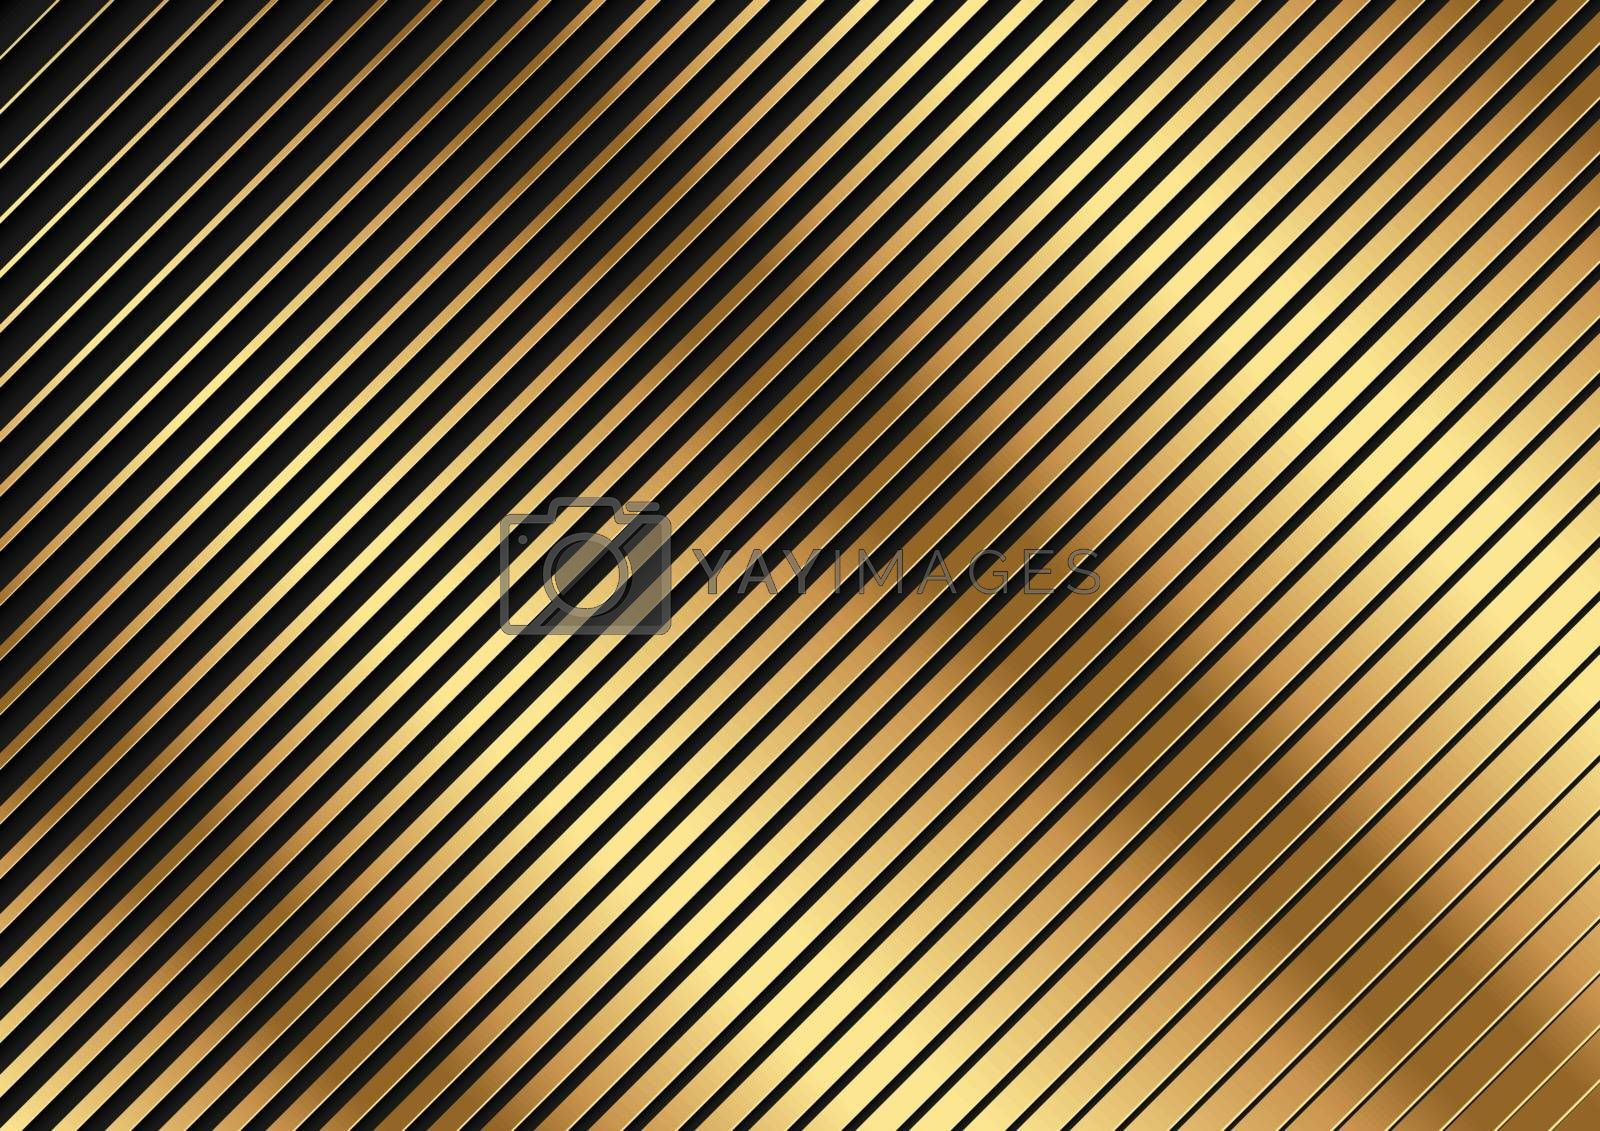 Golden Diagonal Striped Pattern - Abstract Background Illustration for Your Graphic Design, Vector